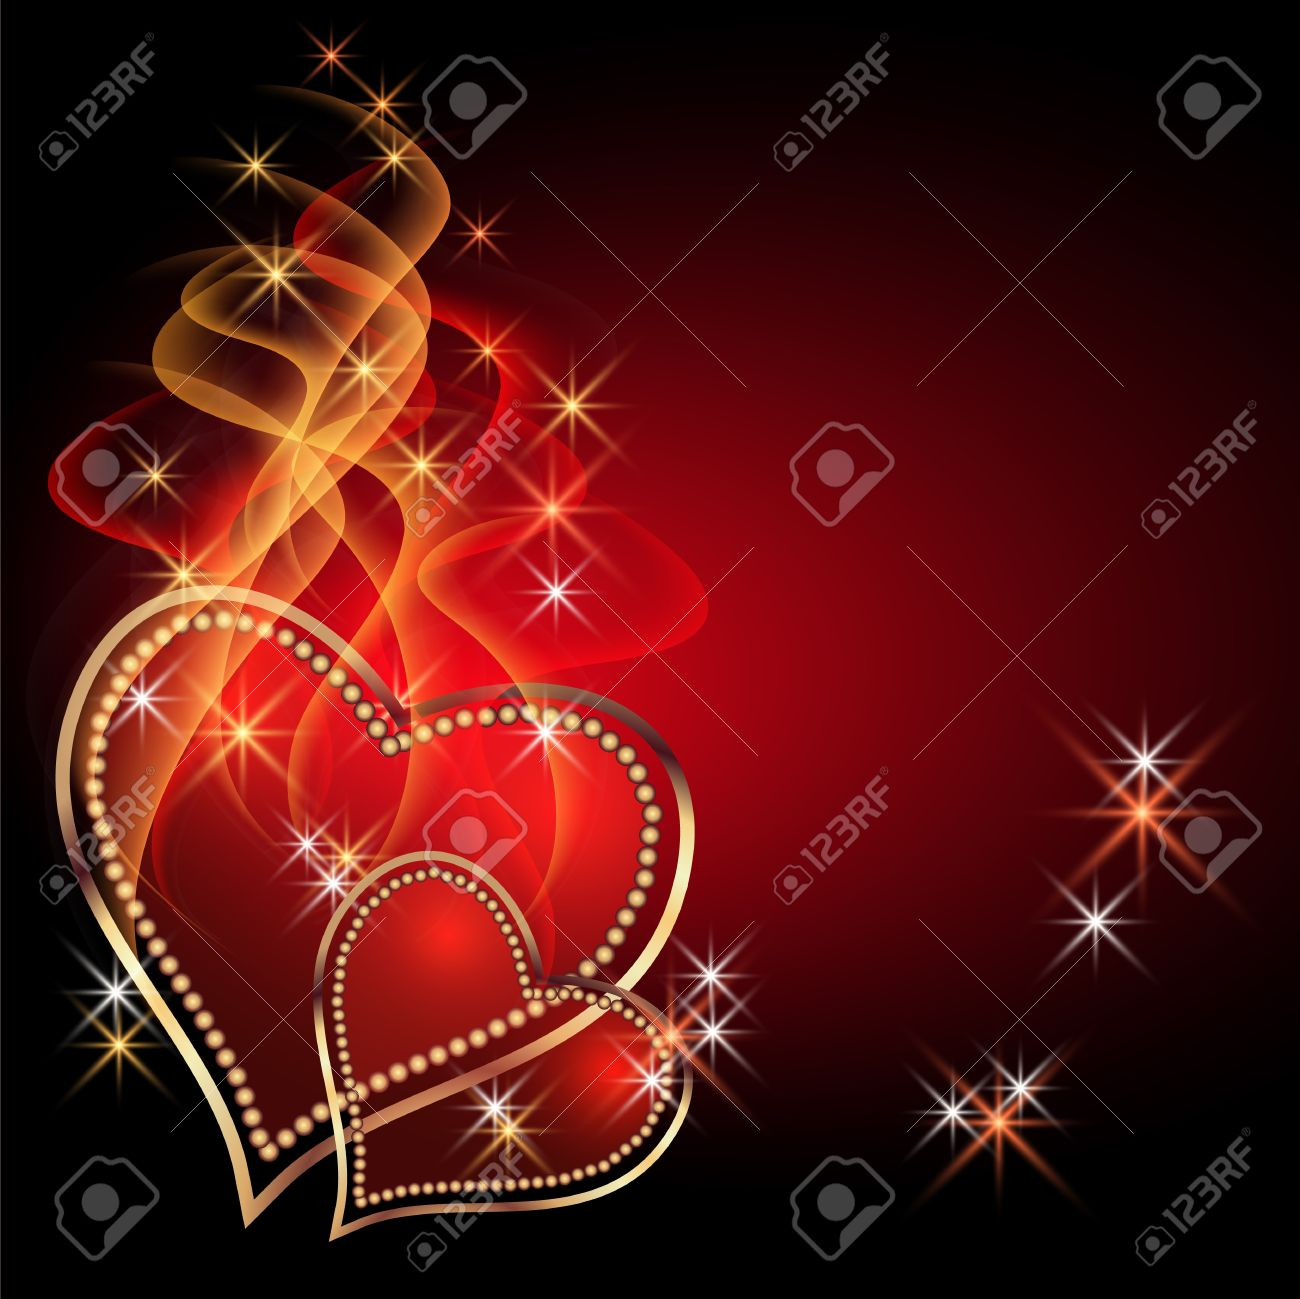 Burning Two Hearts With Decorative Smoke Royalty Free Cliparts ...